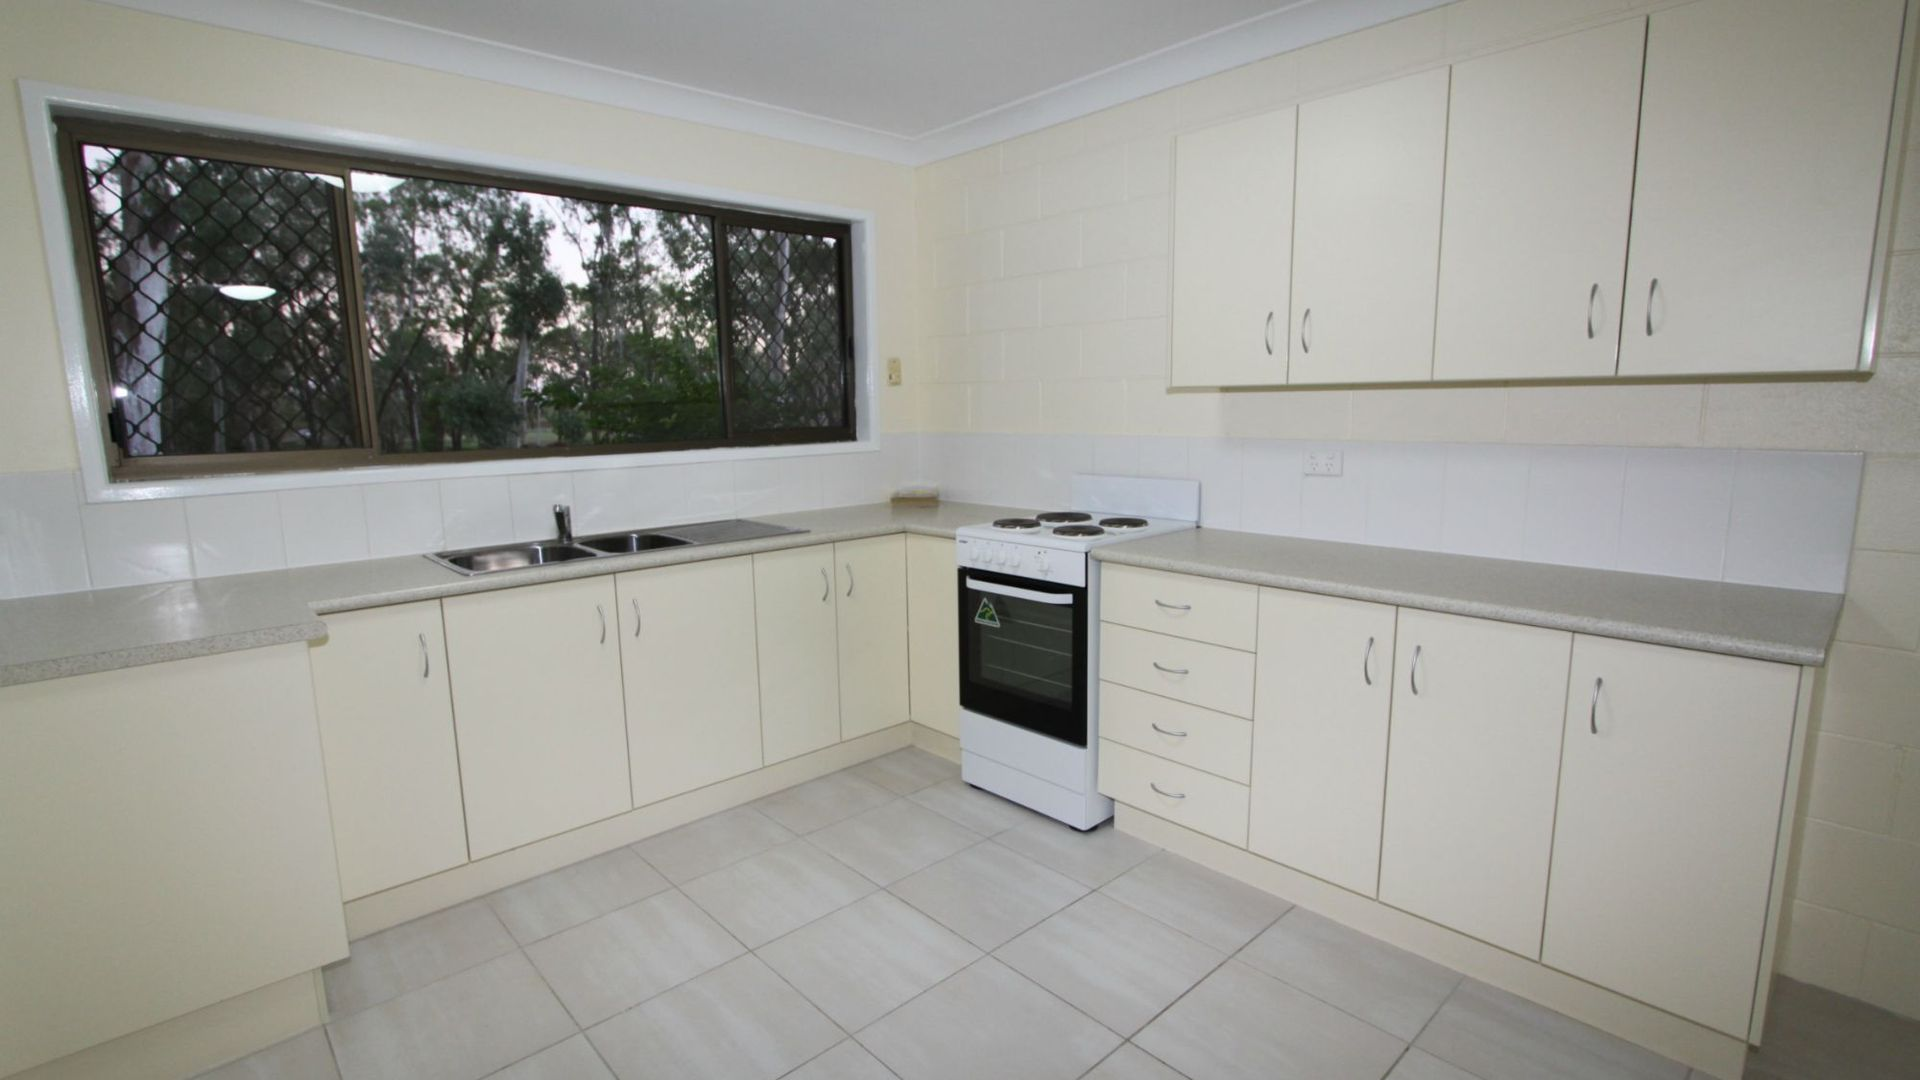 2/7 Snell Street, Koongal QLD 4701, Image 1